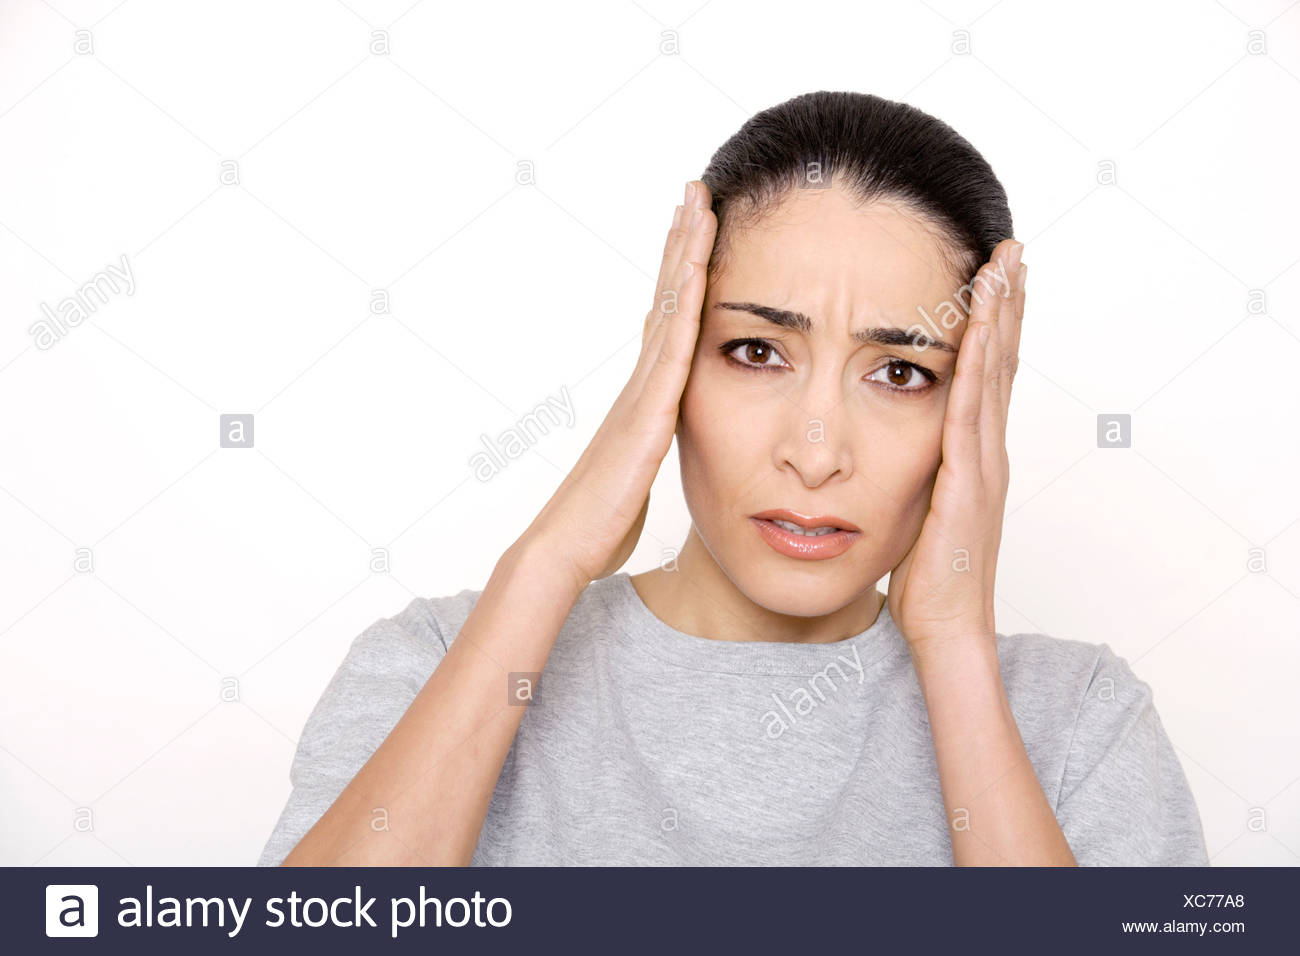 Young woman with hands on head, portrait - Stock Image